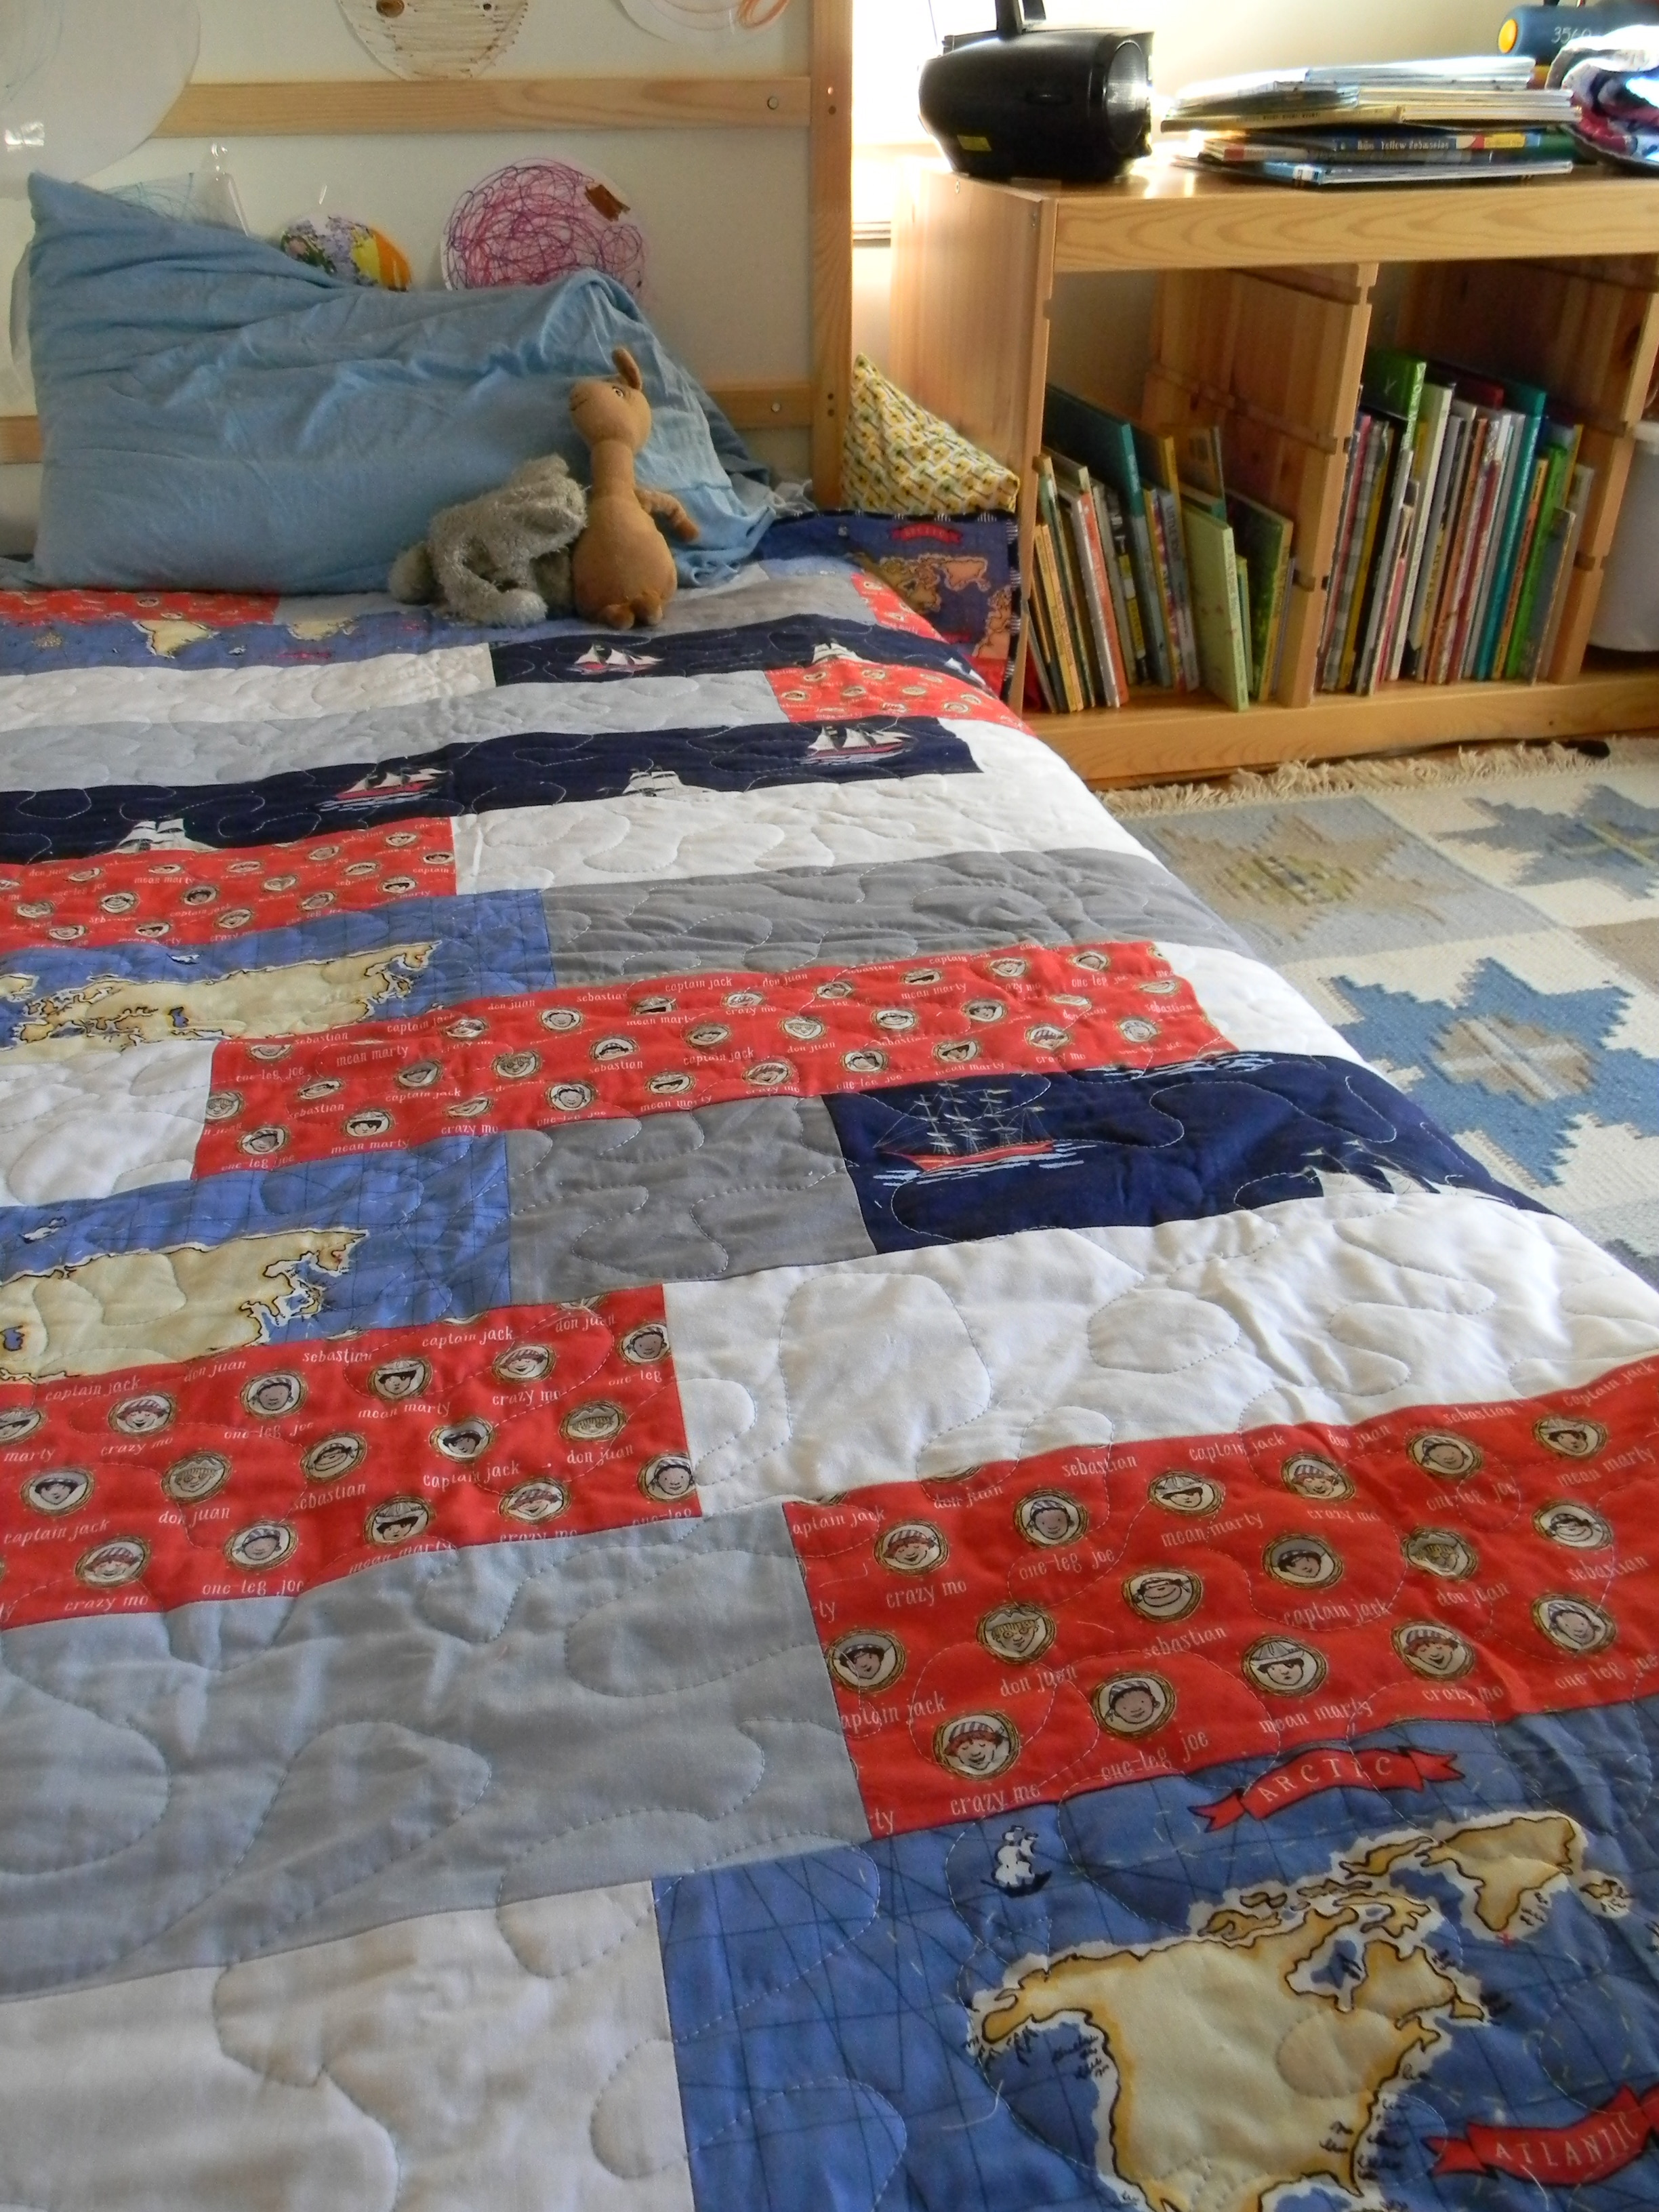 and youth for quilts deals bedding girl of everything collections surf set little wanted surfing linen queen train know sheets boys childrens bedclothes size a full room ter twin red ddler sheet kids to you girls sets quilt modern about boy